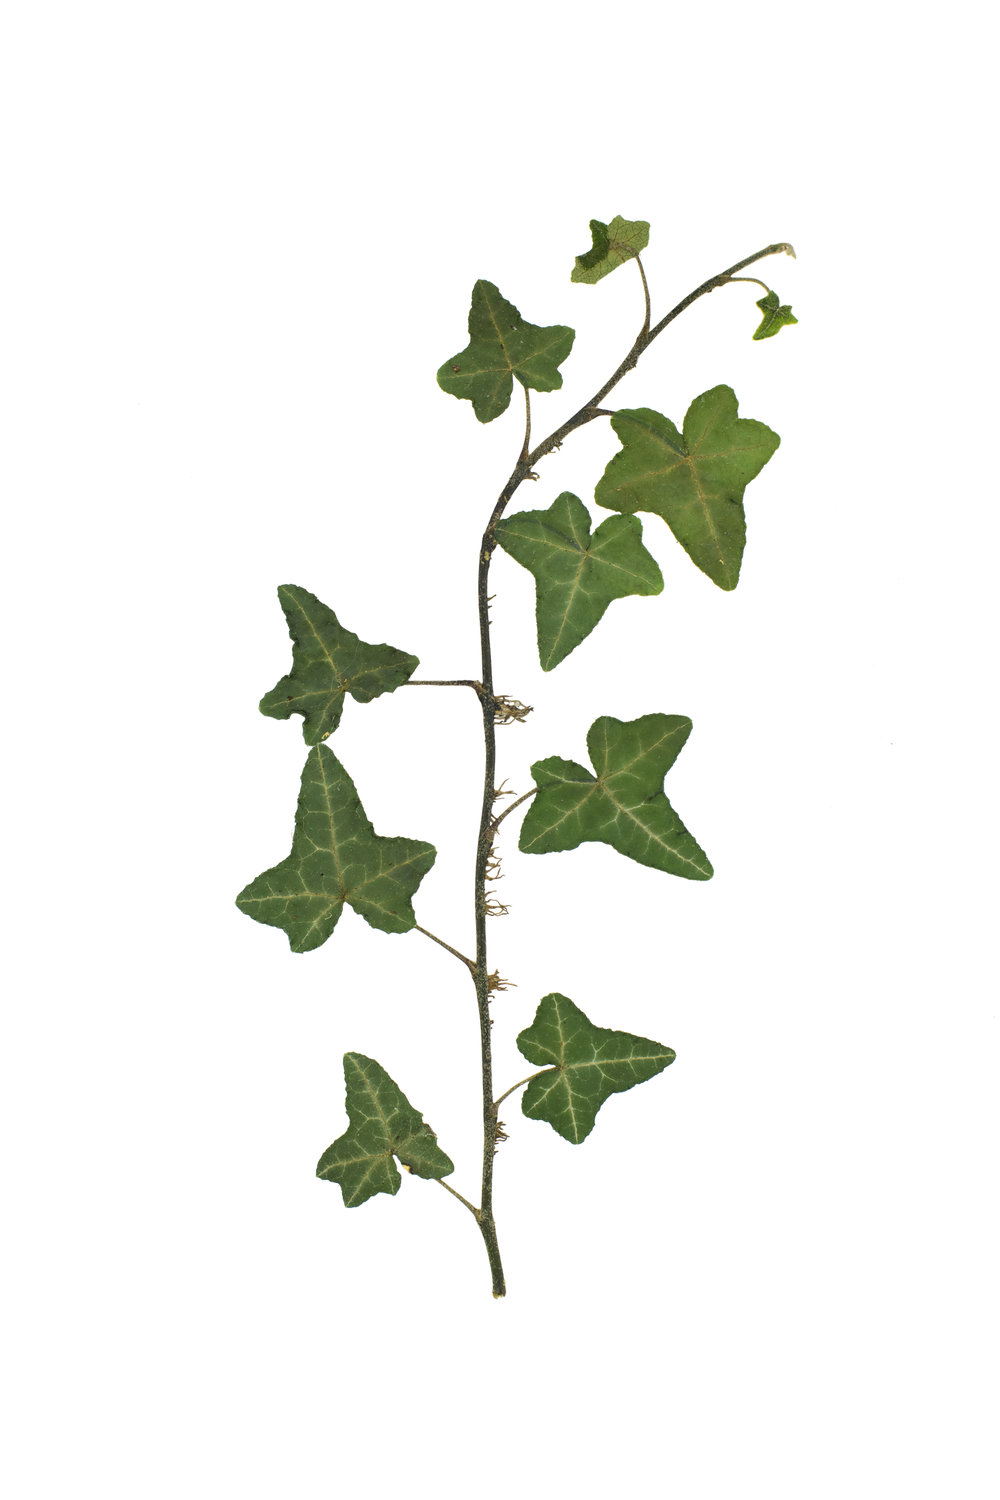 English Ivy / Hedera helix